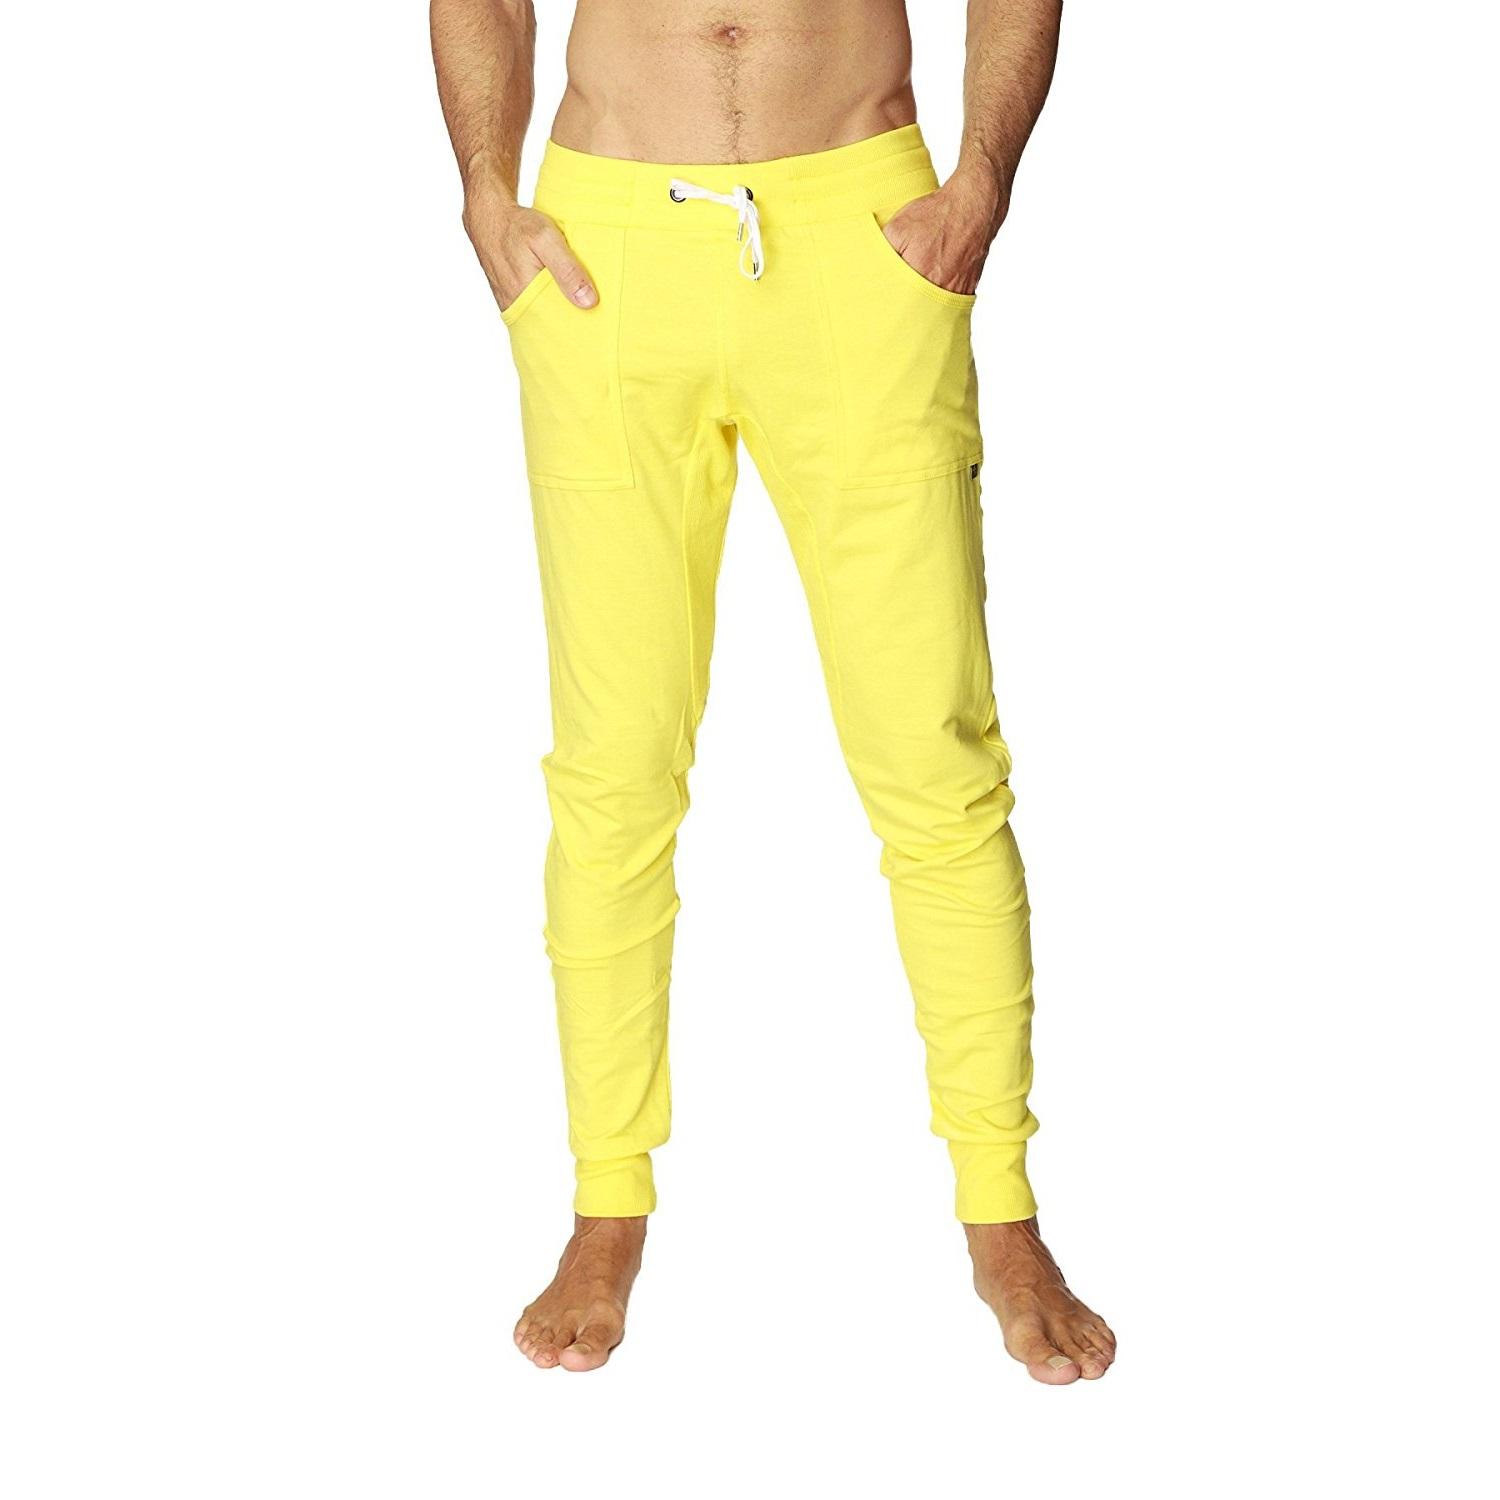 4-rth mens long cuffed jogger yoga pants tropic yellow